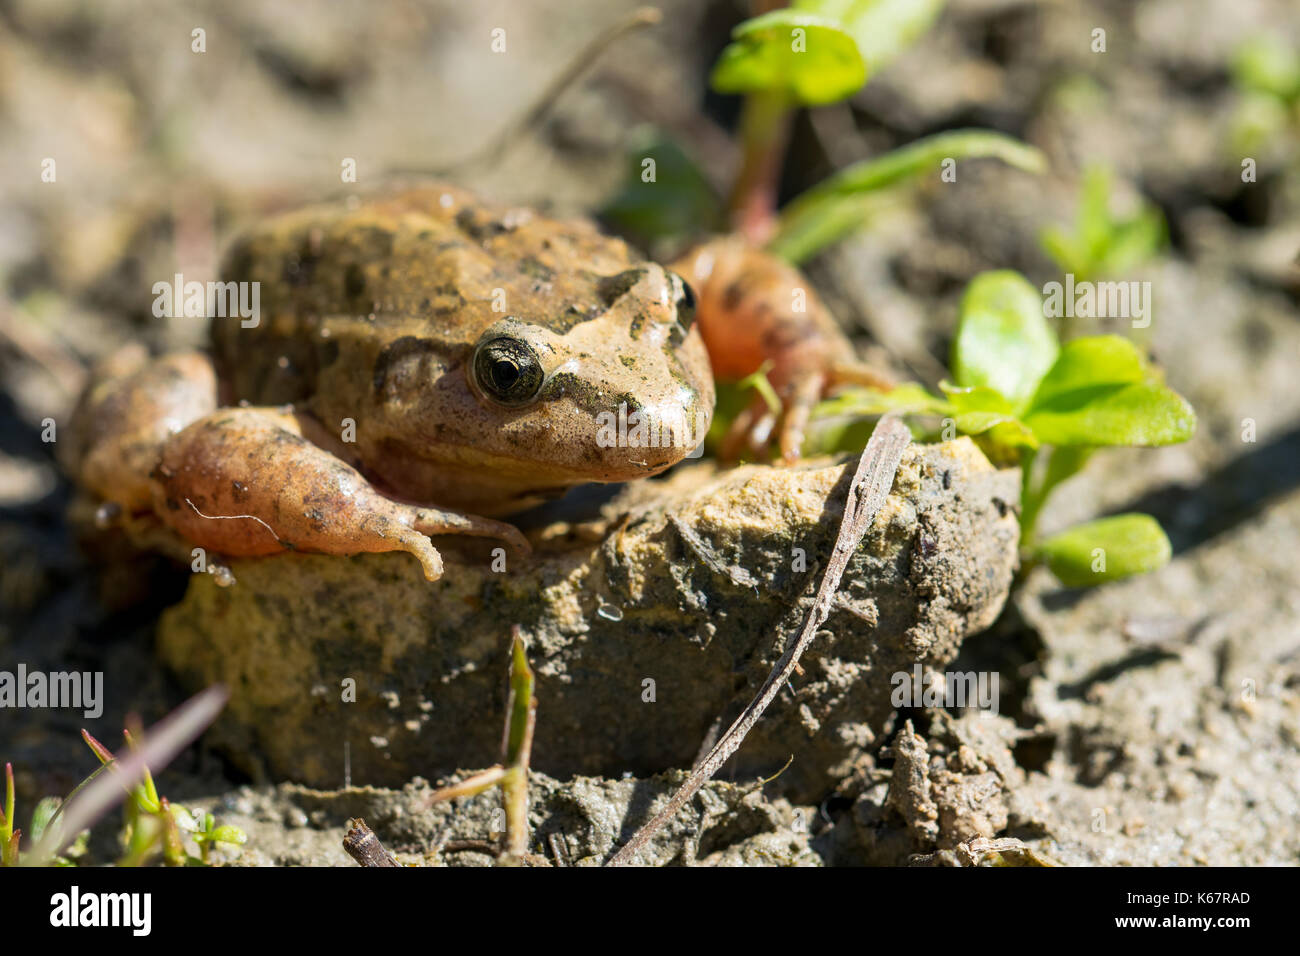 A Mediterranean Painted Frog, Discoglossus pictus, in the mud near a water pond in a Maltese valley, Malta - Stock Image